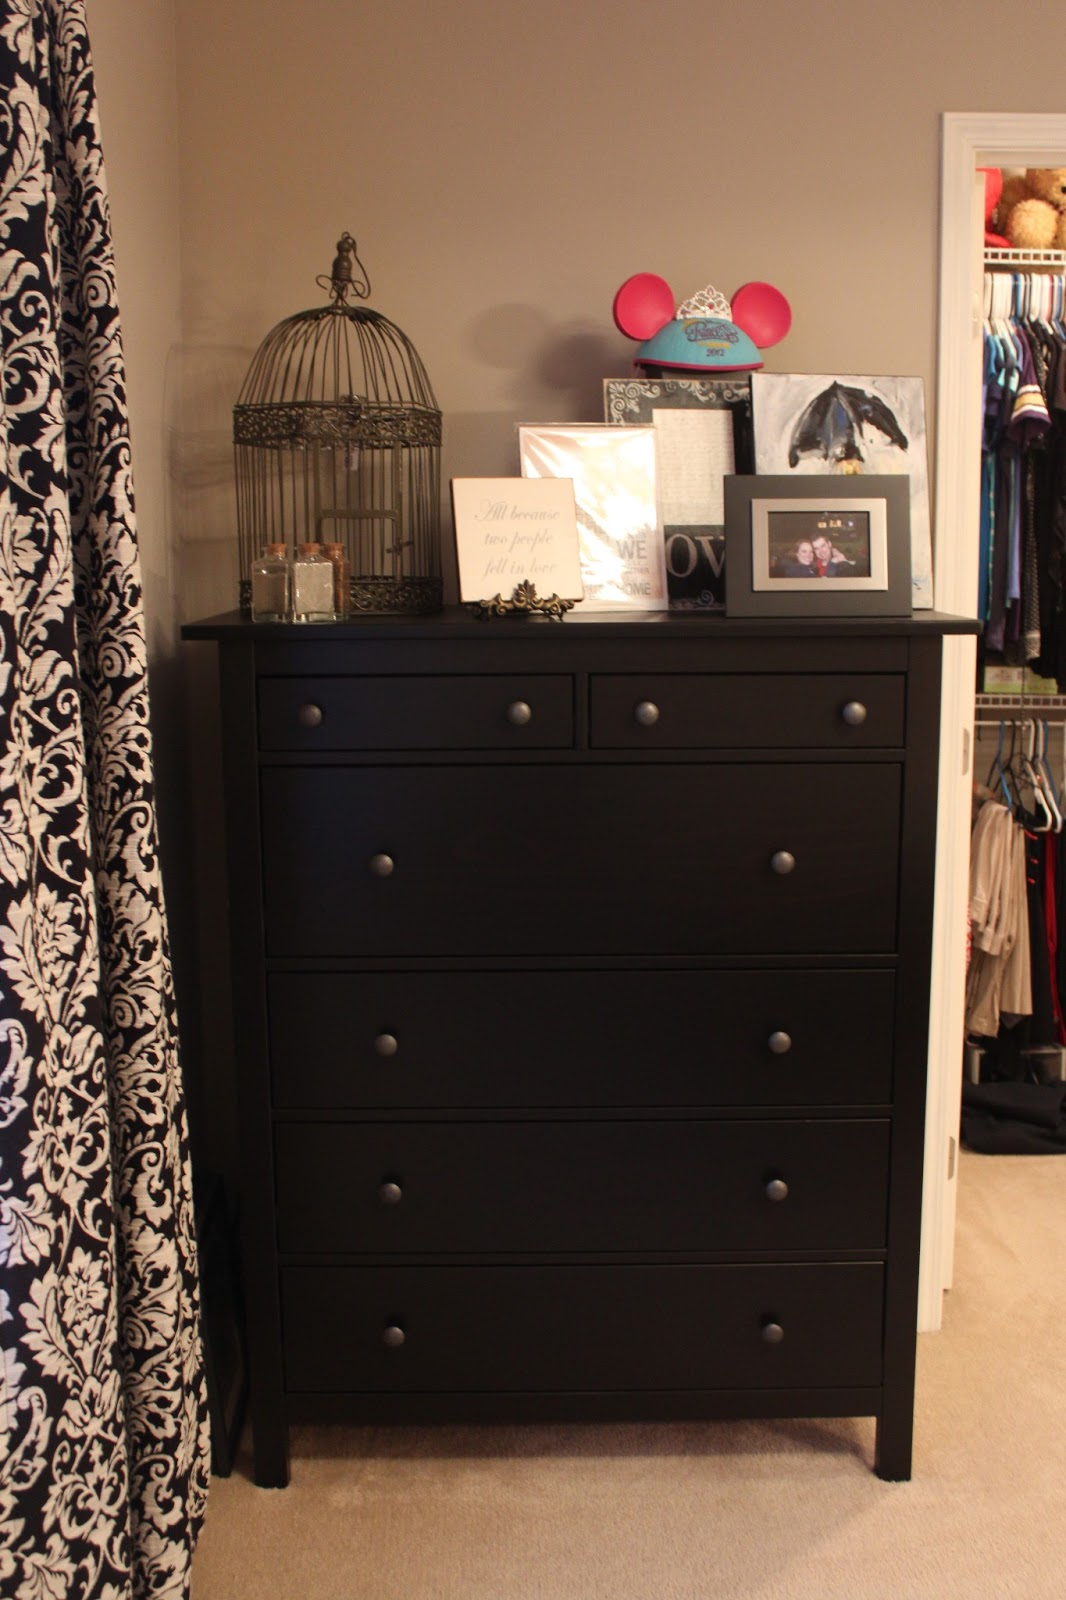 Love K The Slowest Makeover Of All Time 6 Drawer Chest 8 Starter Bedroom Suit For 1000 Ikea Hemnes Review From Faye Black Brown